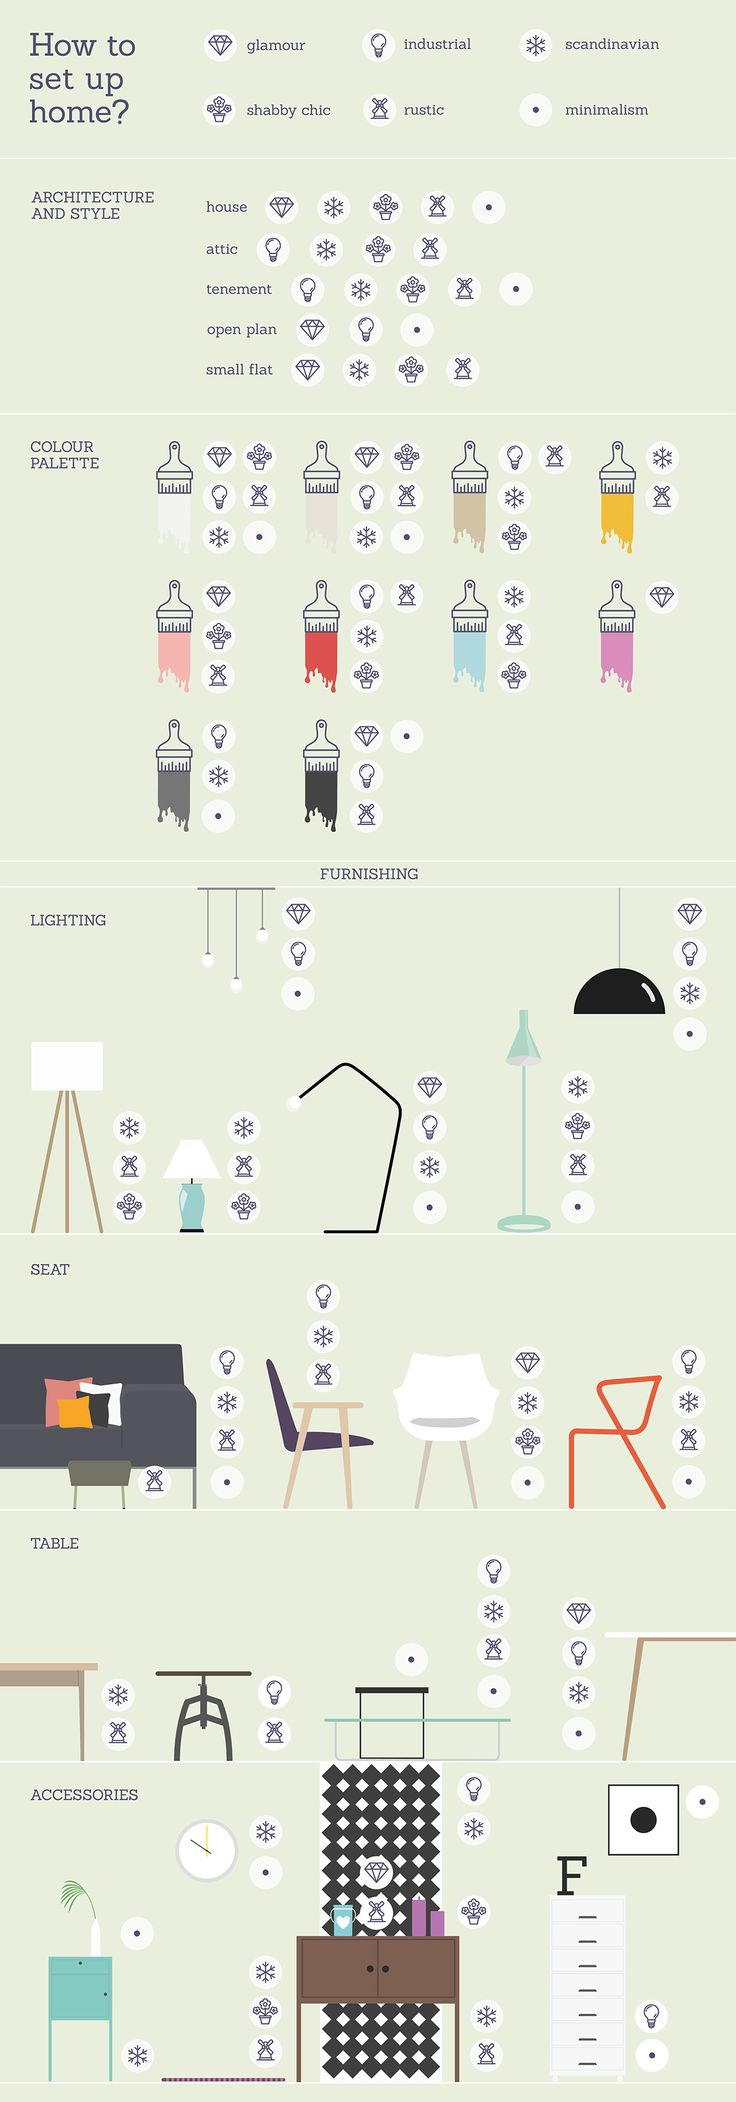 Infographic // How to set up home? on Behance